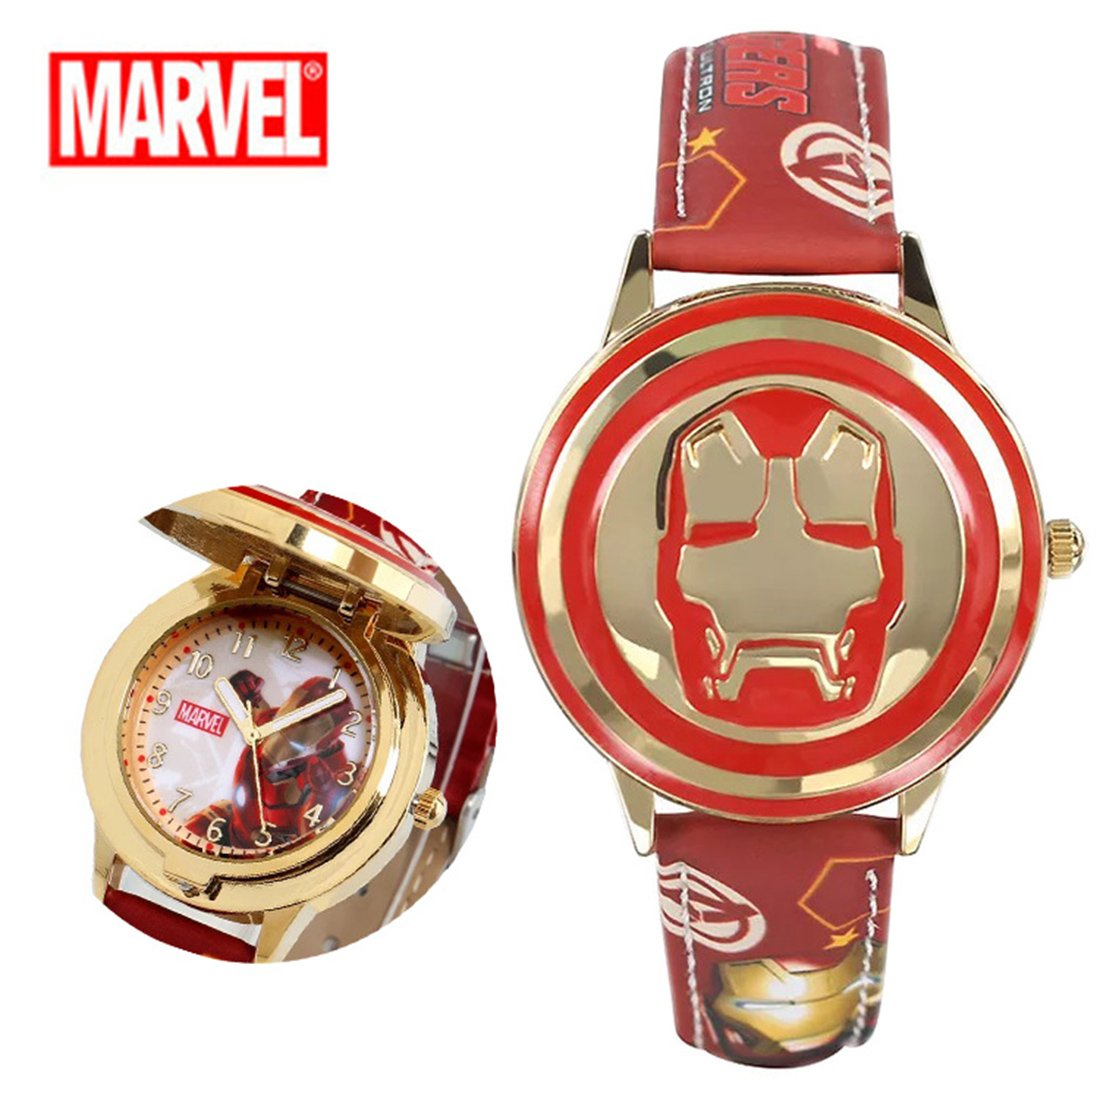 BRANDSALE Ironman Watch For Boys and Girls | Soft Leather Strap Quartz Wrist Watches For Kids | Marvel Iron Man Wrist Watch | Waterproof Kids Watch (Red)